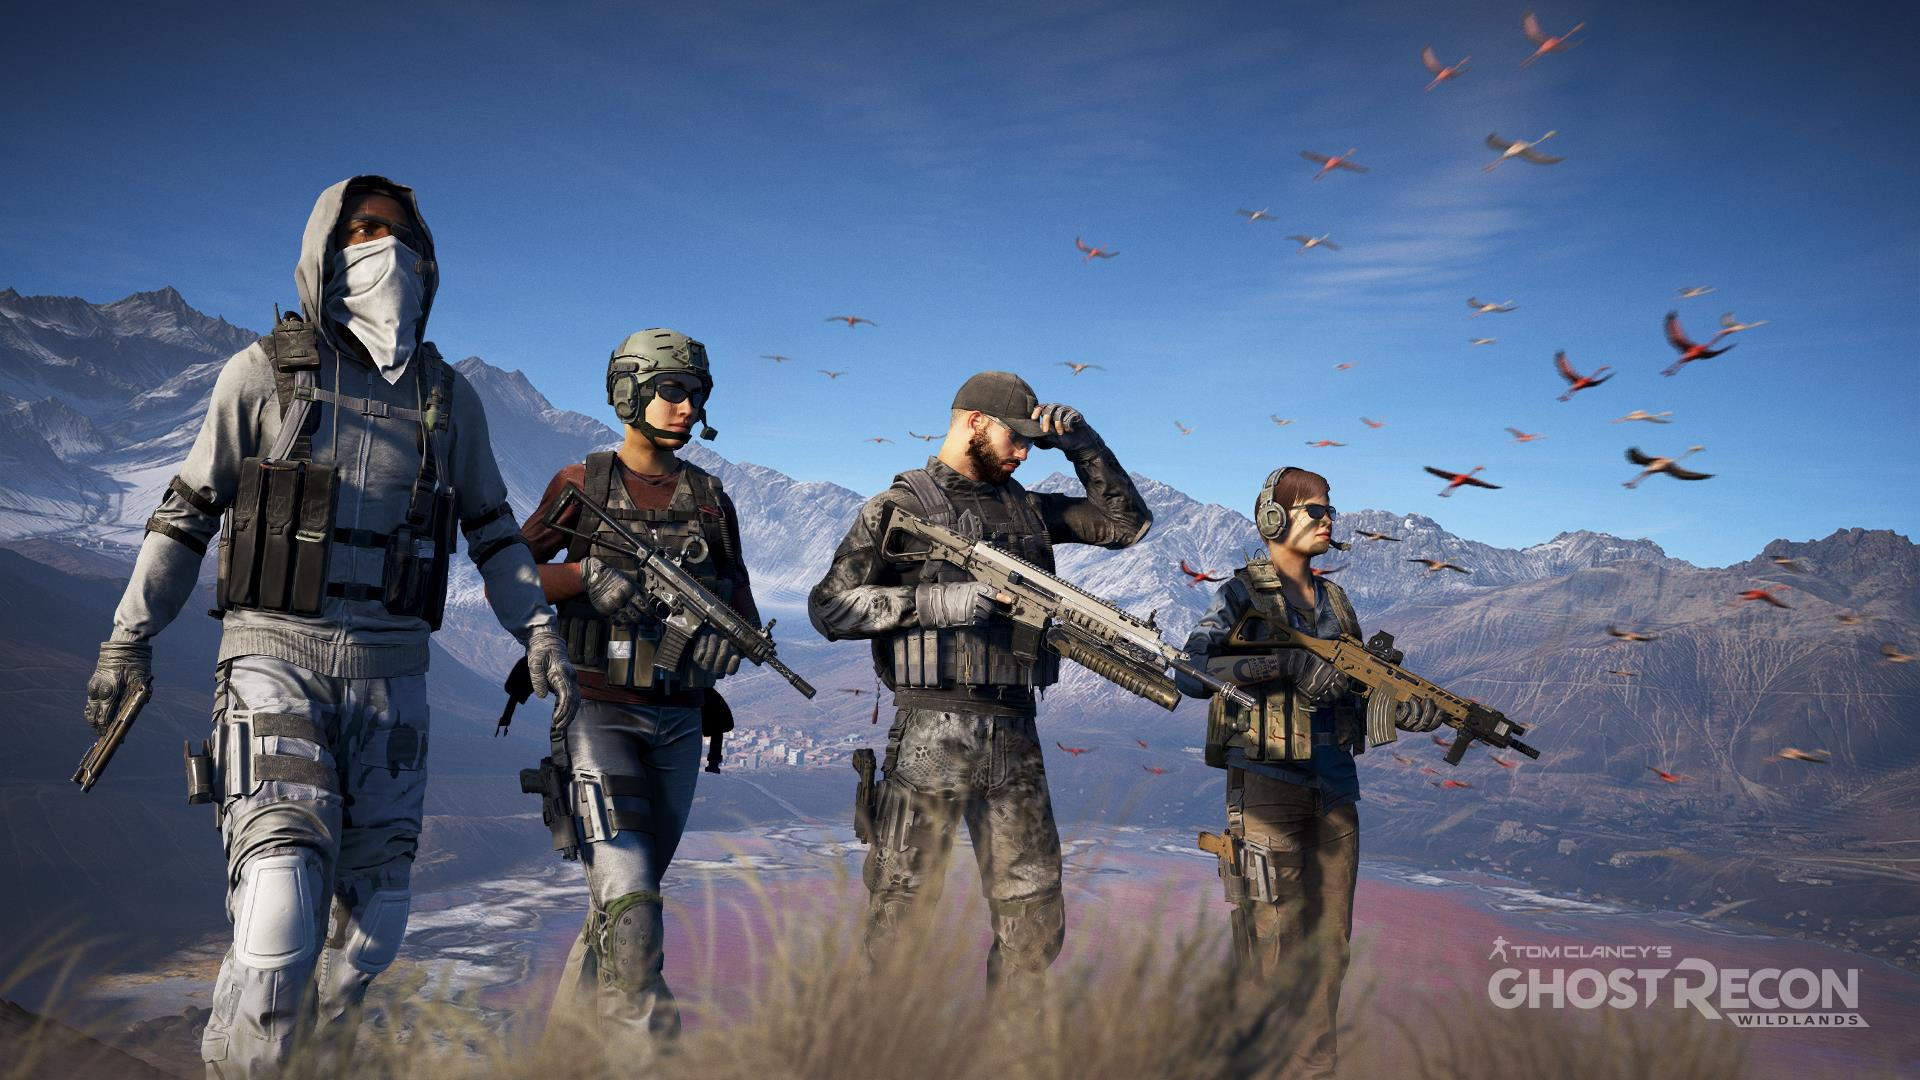 In Ghost Recon Wildlands You Can Customize Your